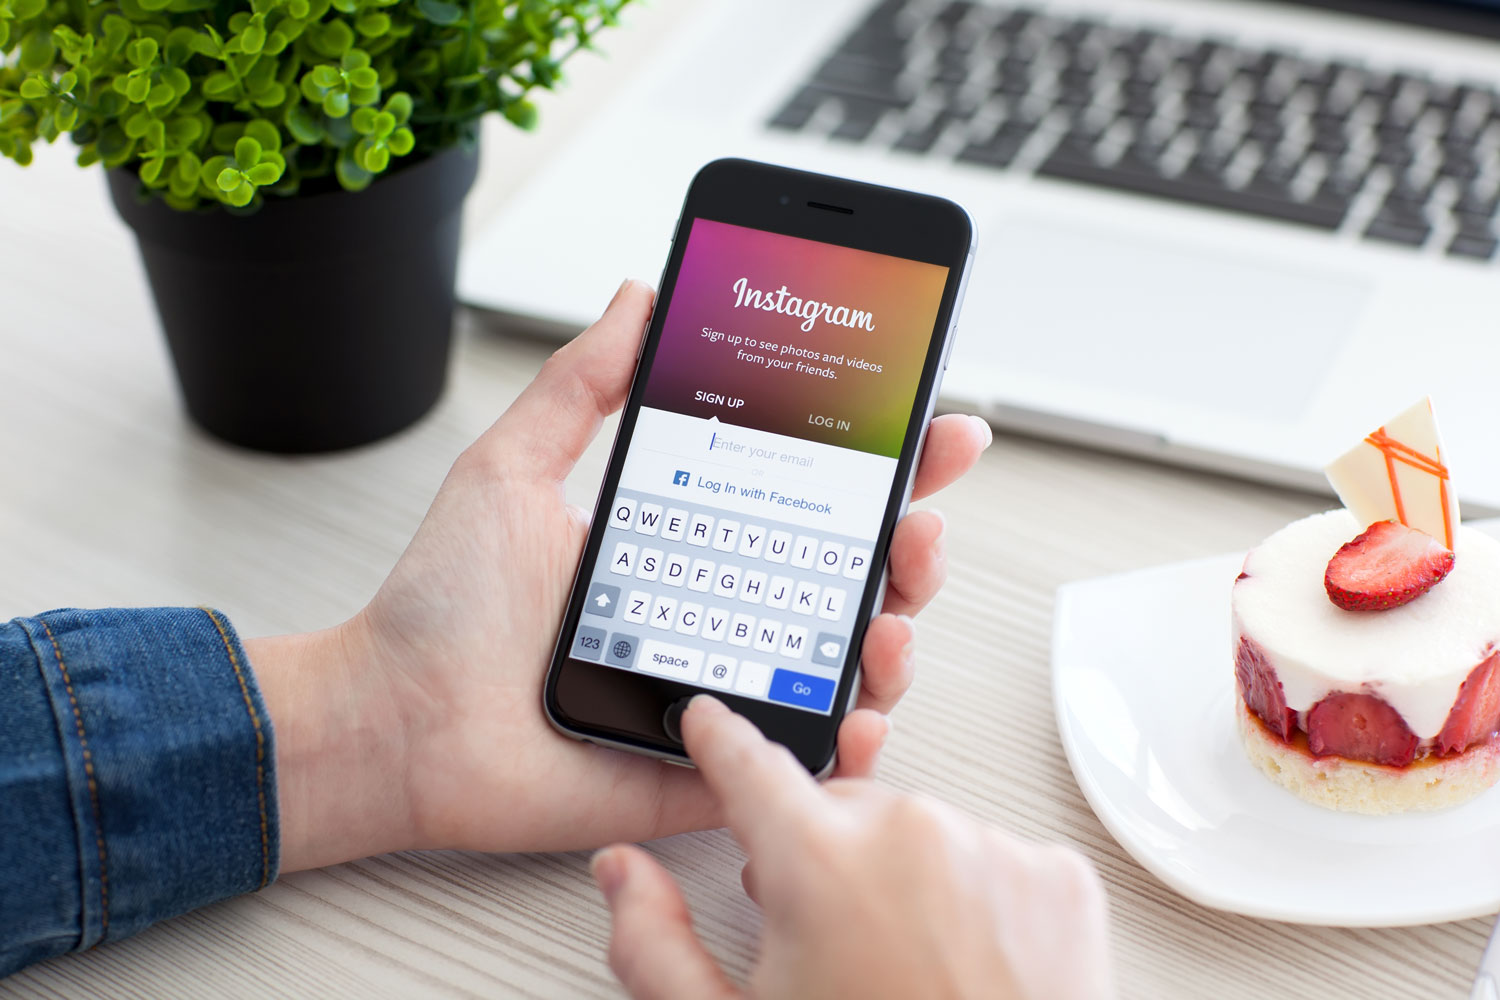 Instagram being used in front of a keyboard for social media marketing